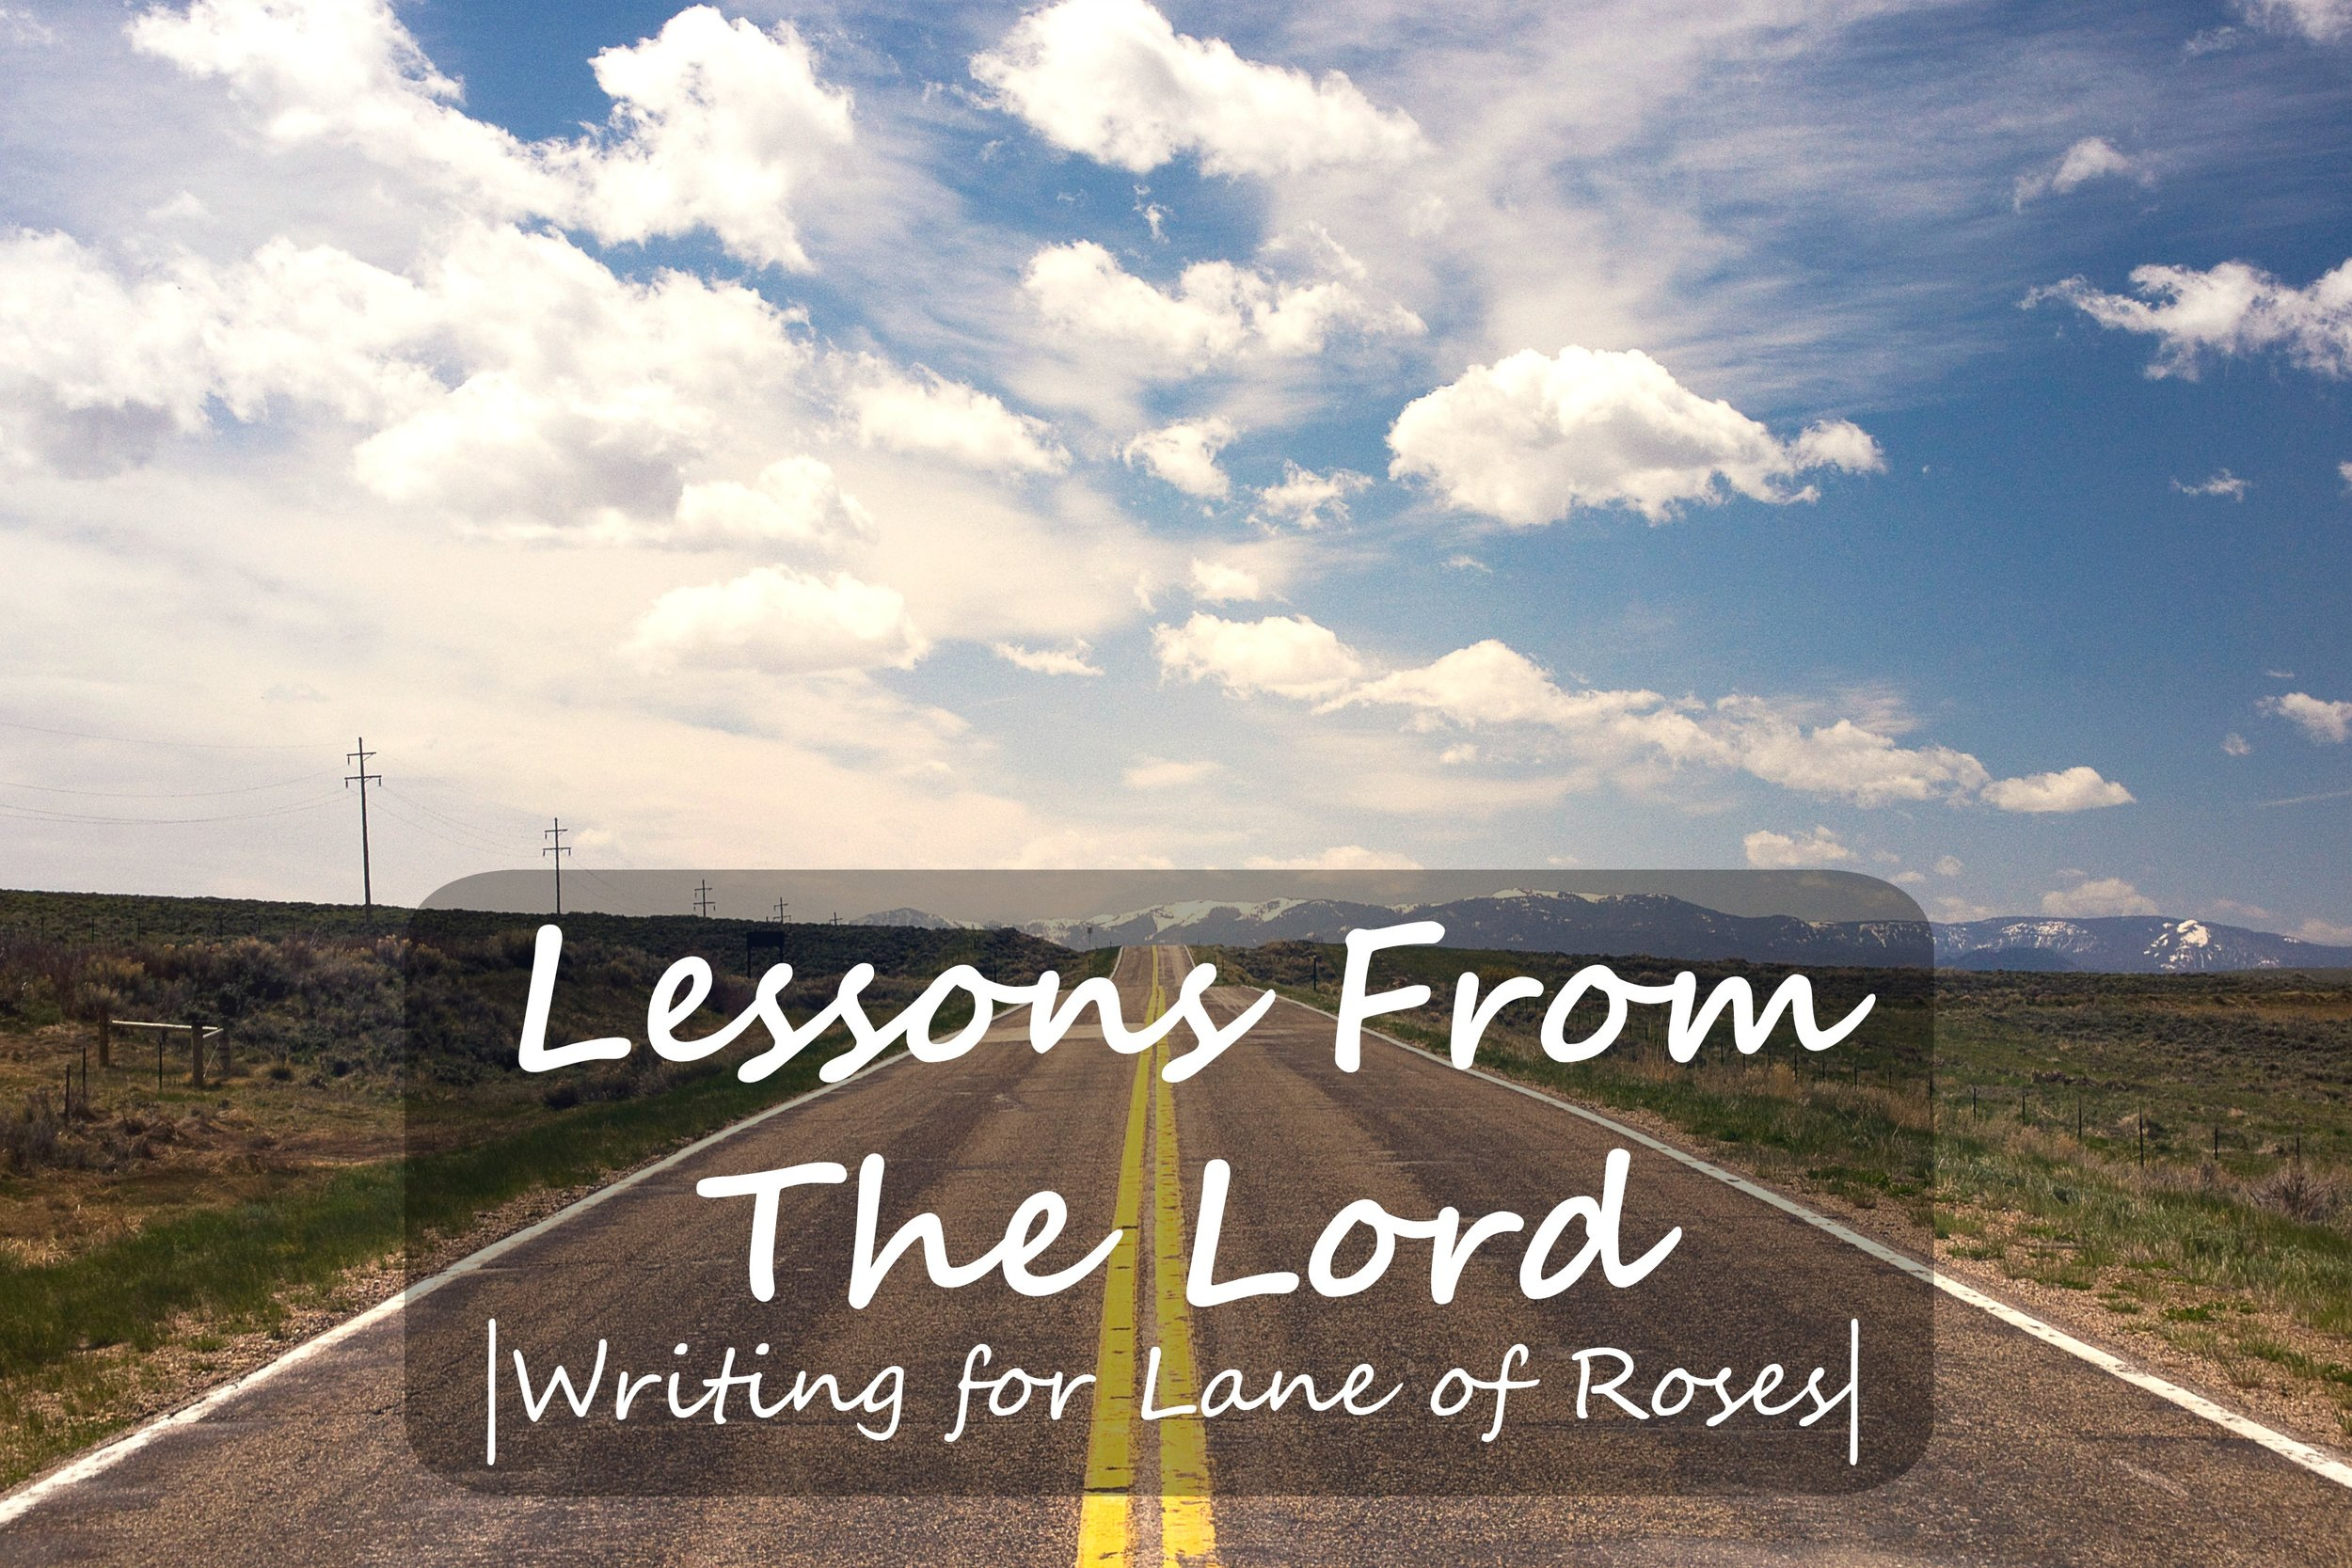 lessons from the lord two.jpg